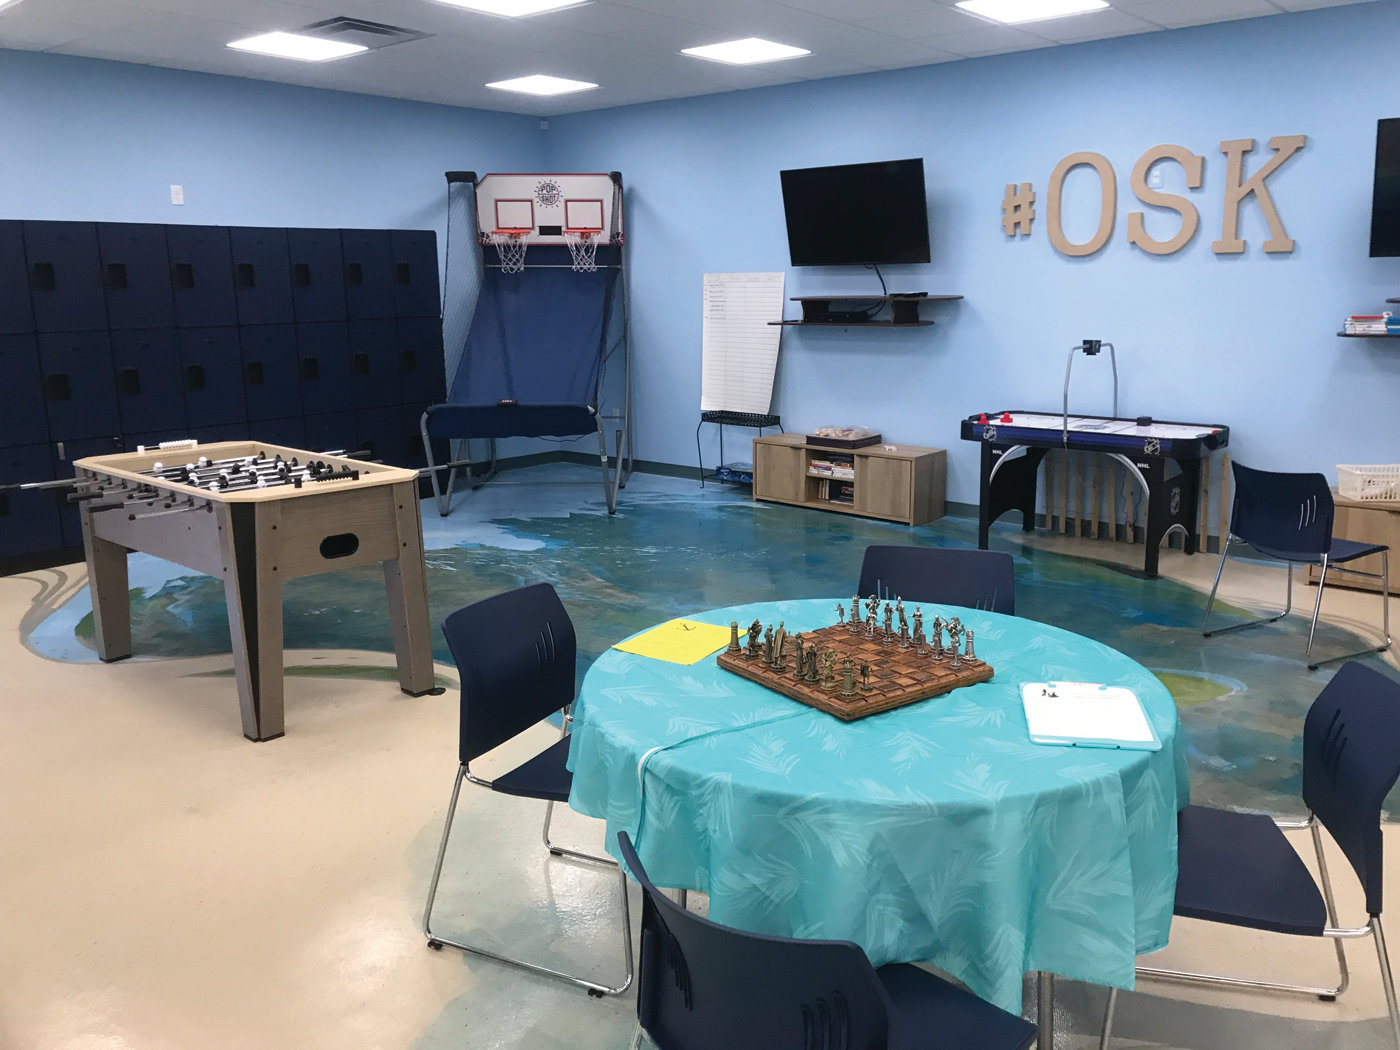 FUN ENVIRONMENT: The recreation area at Ocean State Kidz Club includes foosball, chess, a hoop shoot, air hockey and other games.